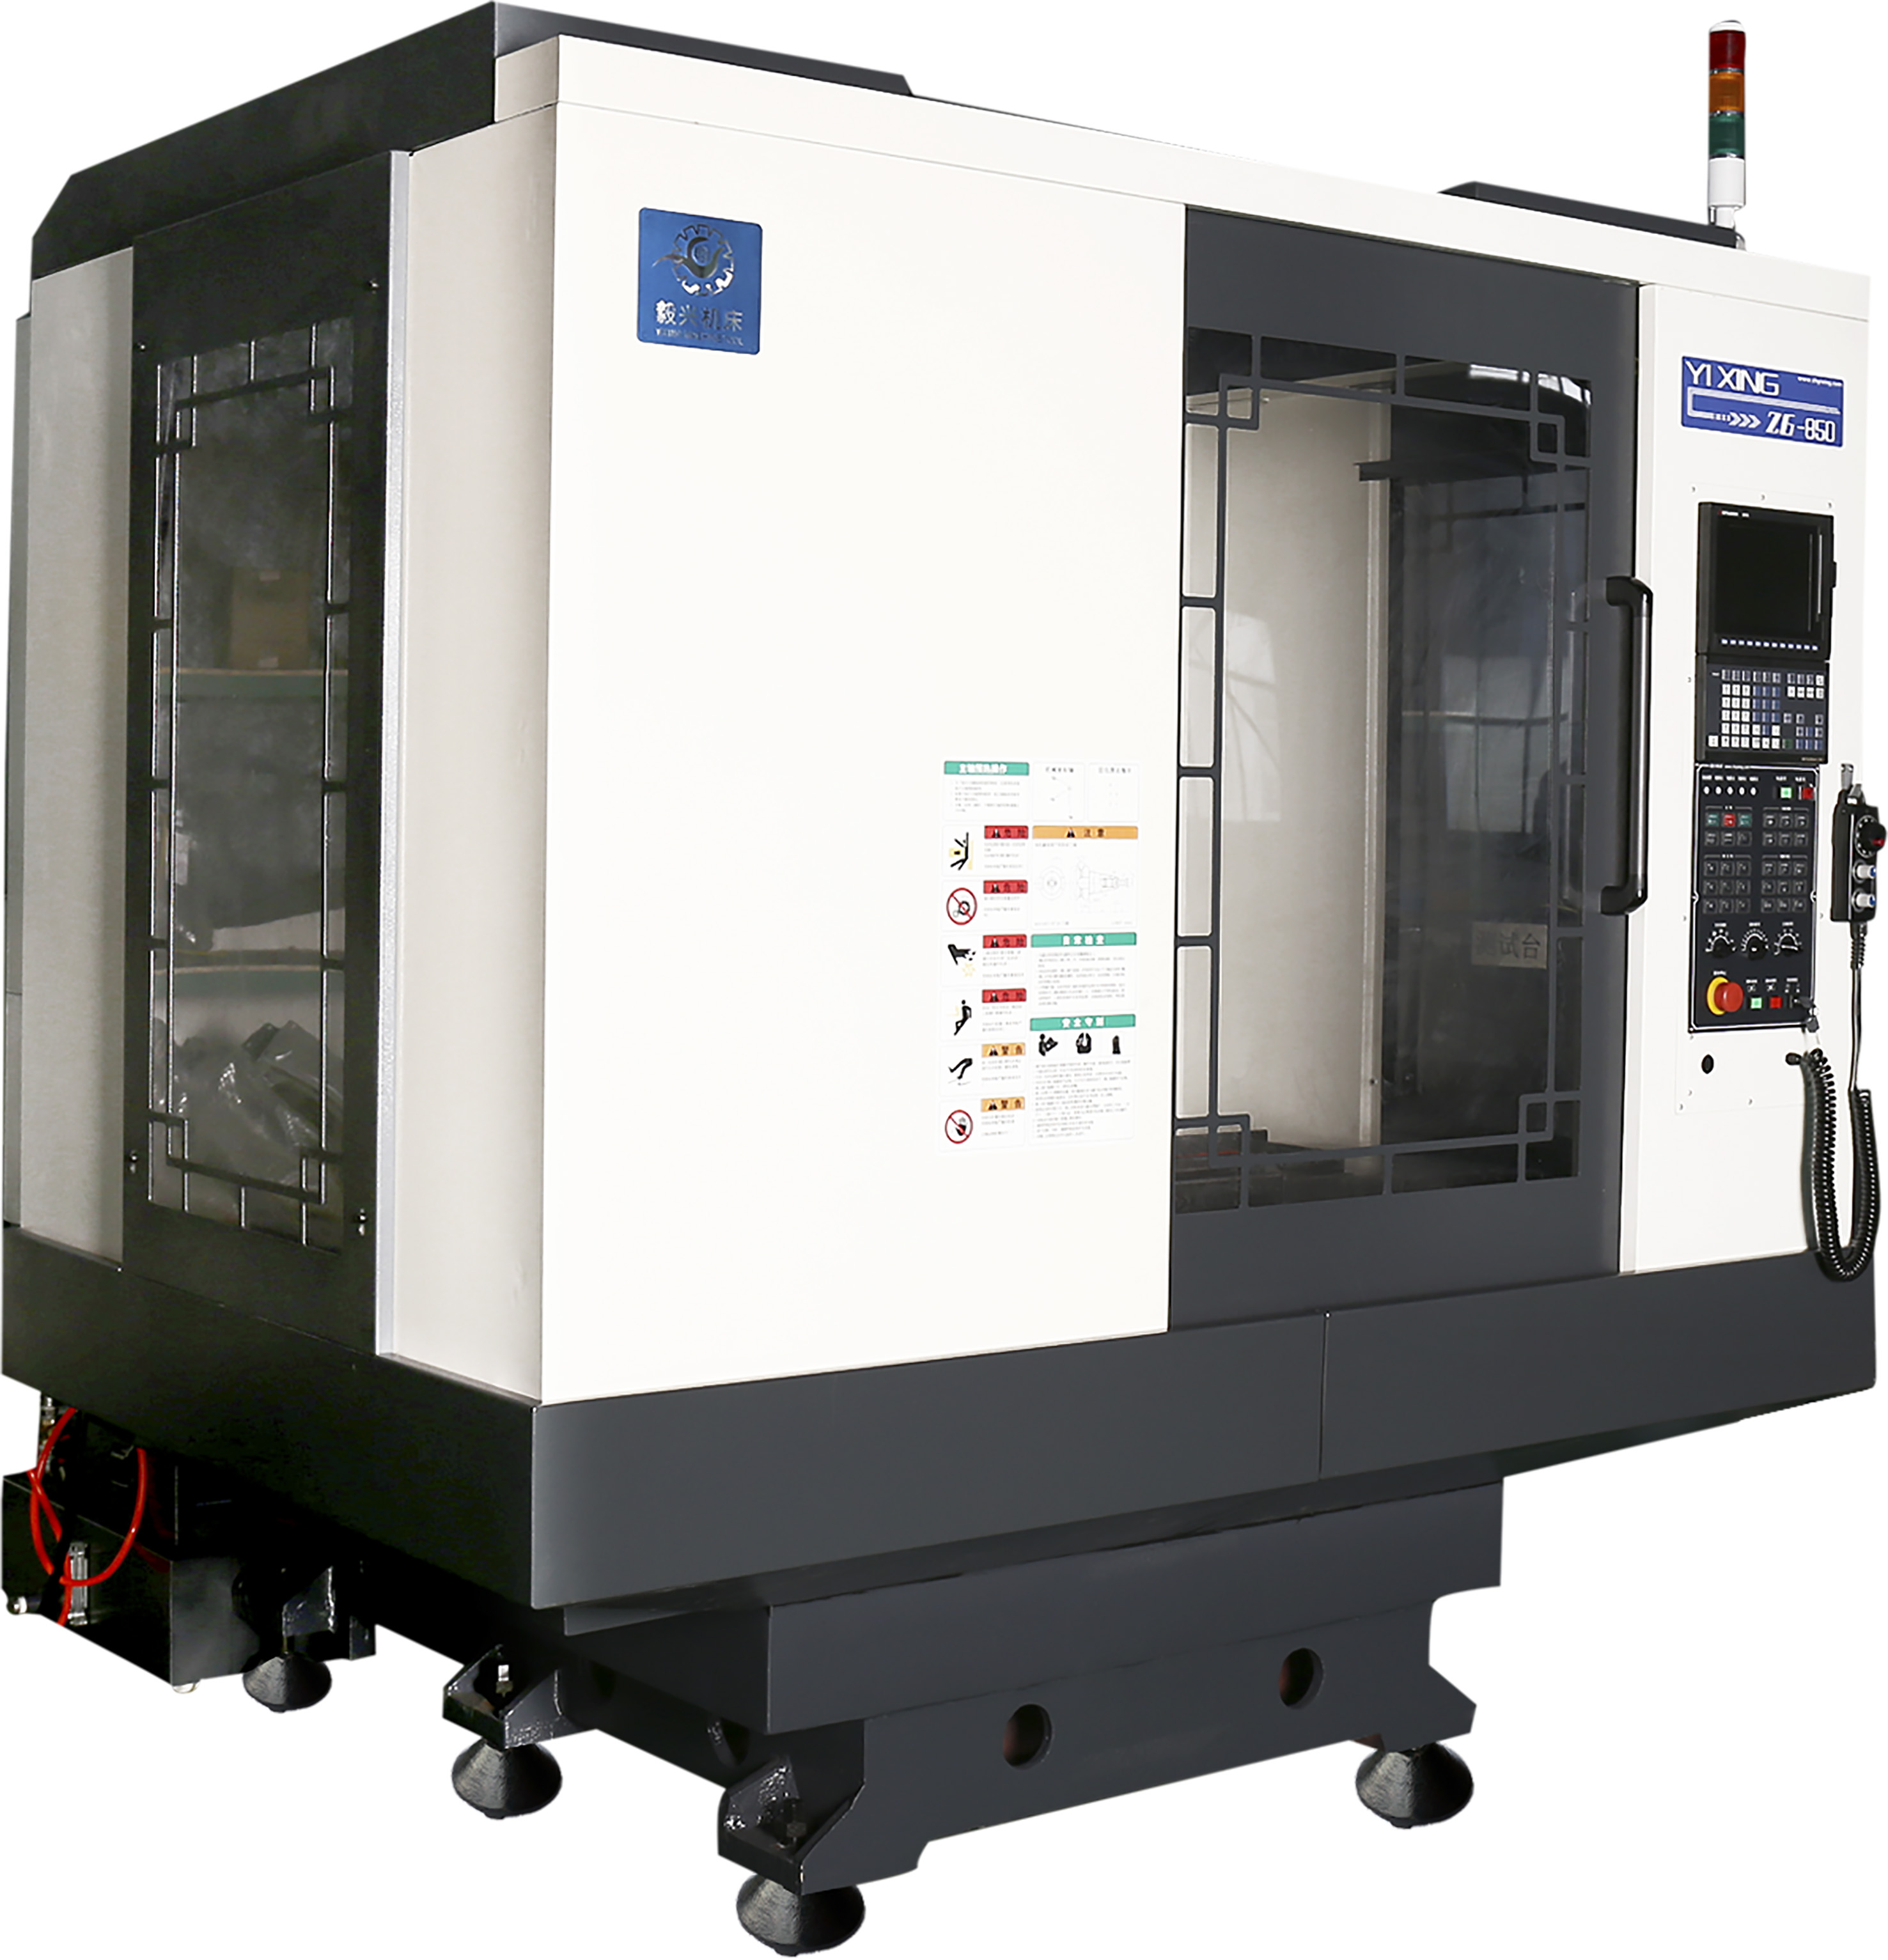 cnc mold machine with Mitsubishi or Fanuc system VMC850